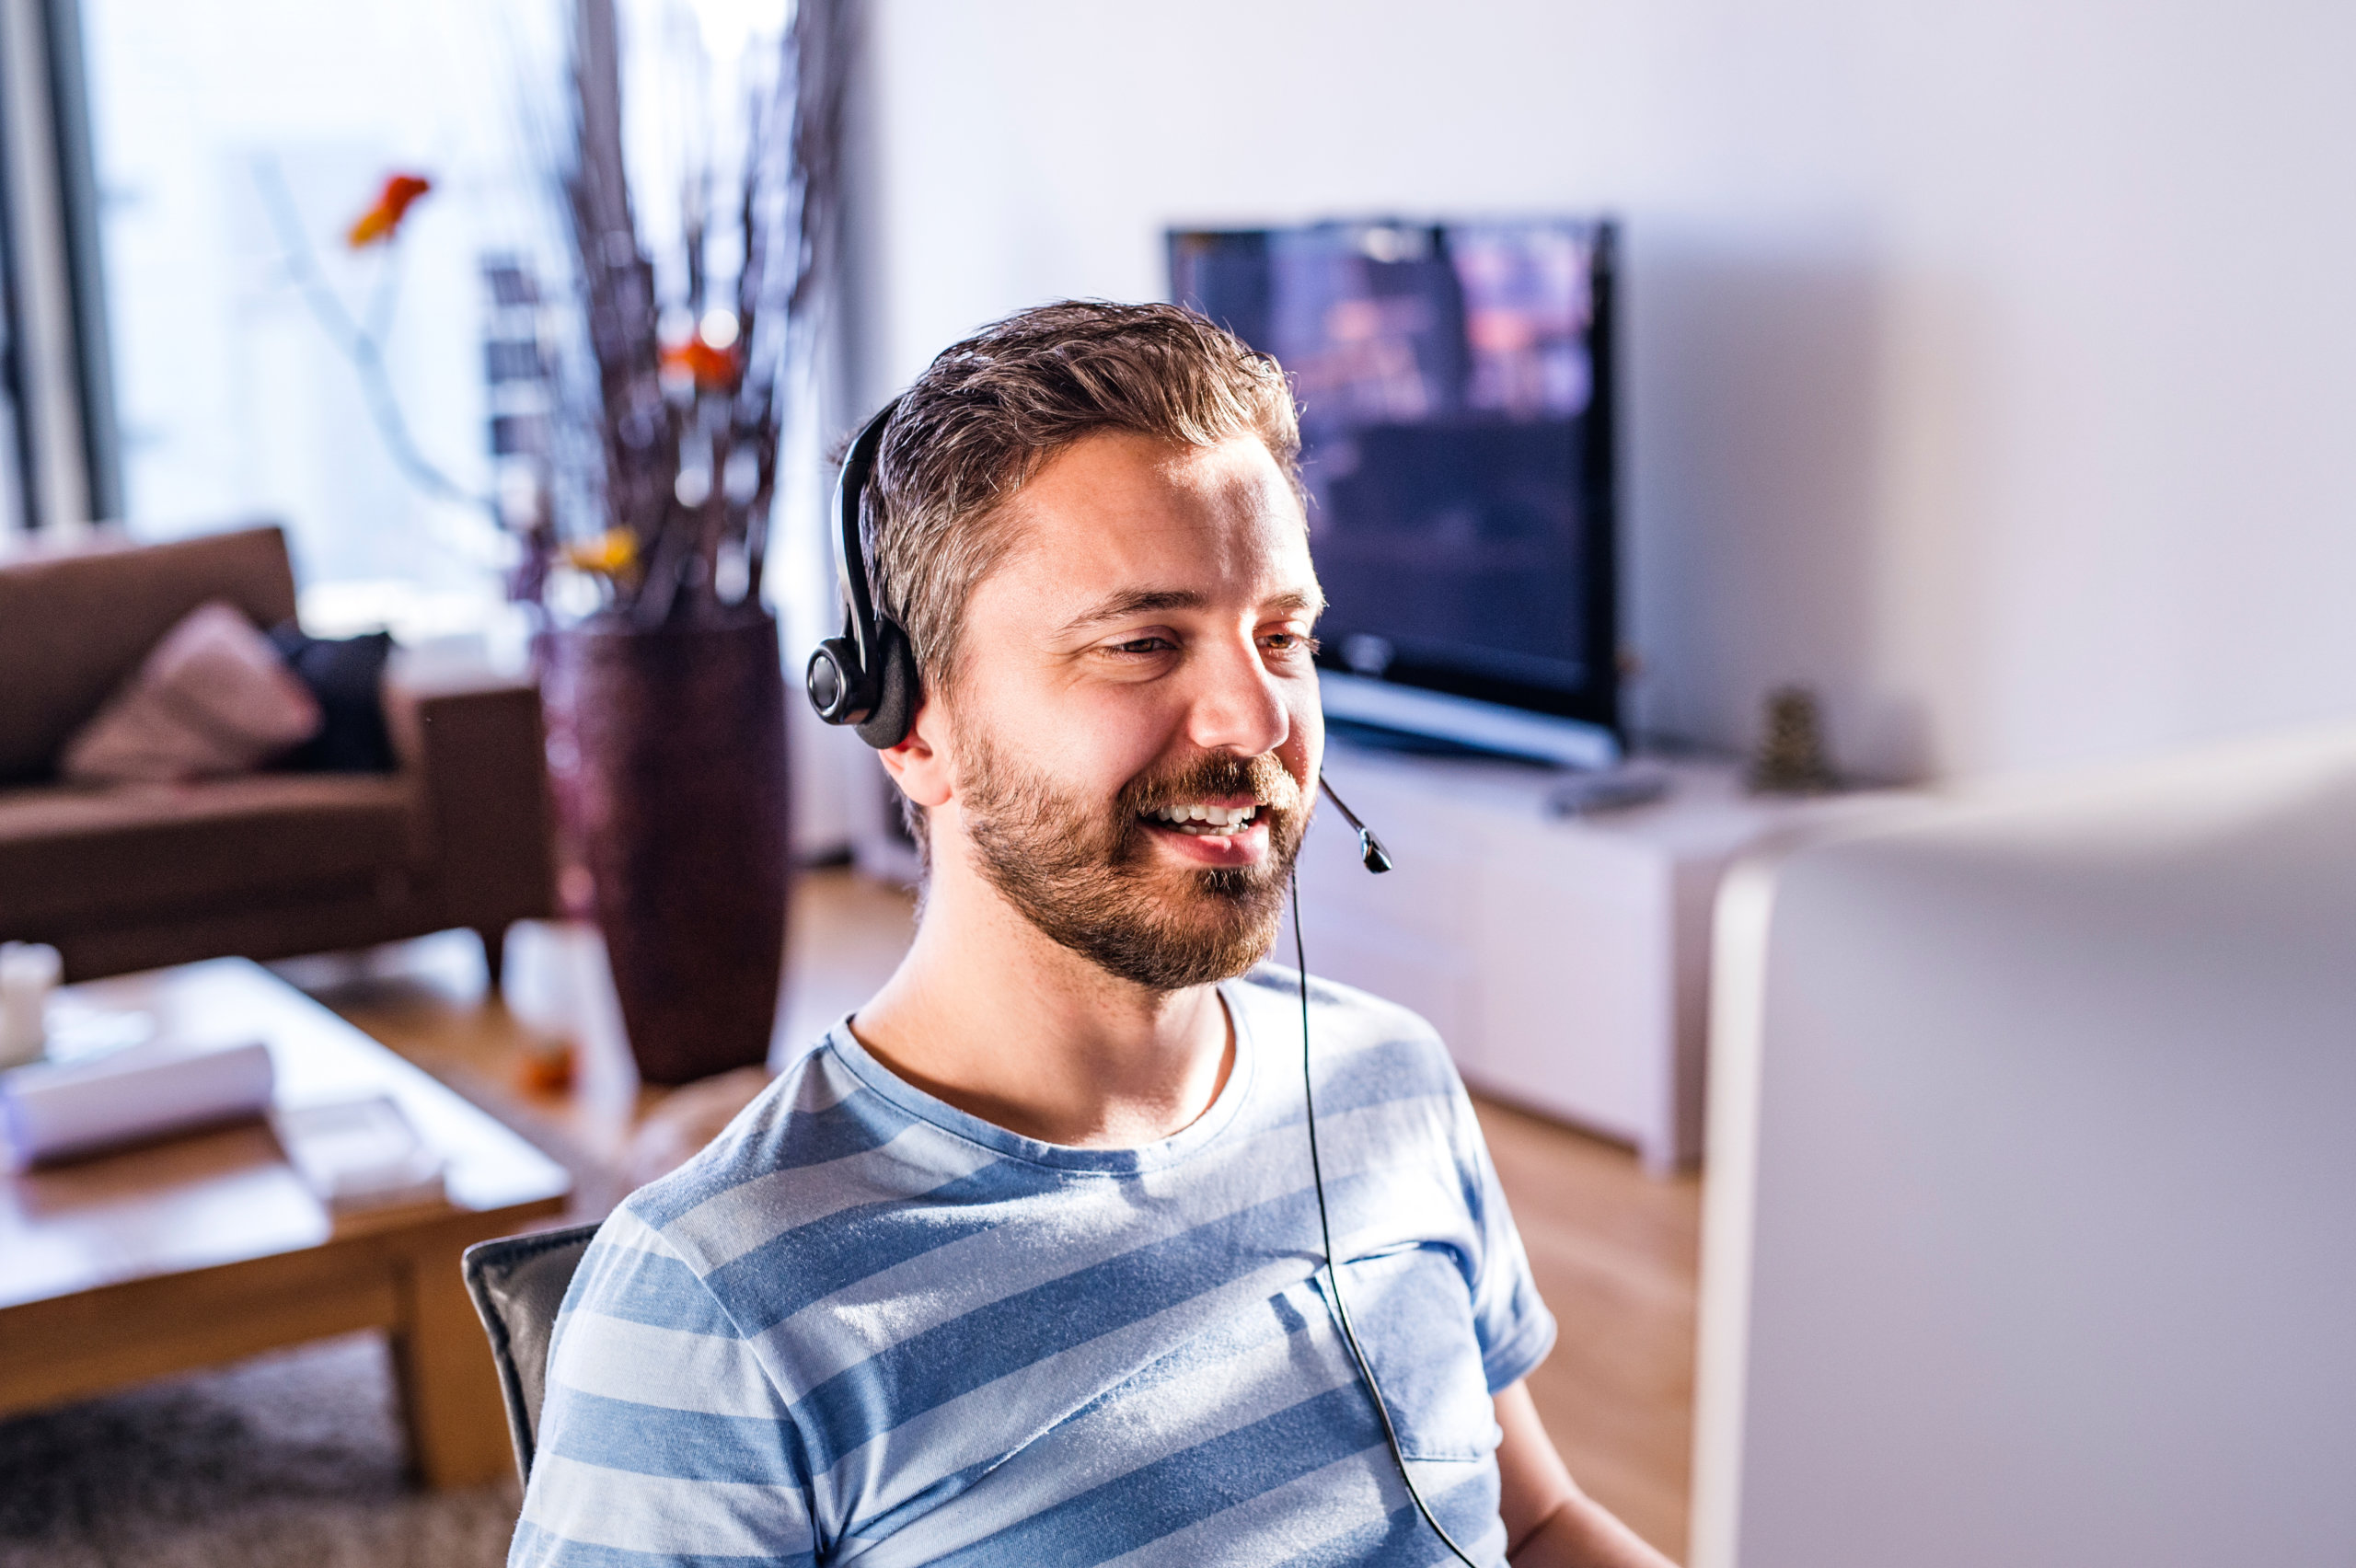 Man sitting at the desk, working from home on computer, wearing headseat, talking on the phone